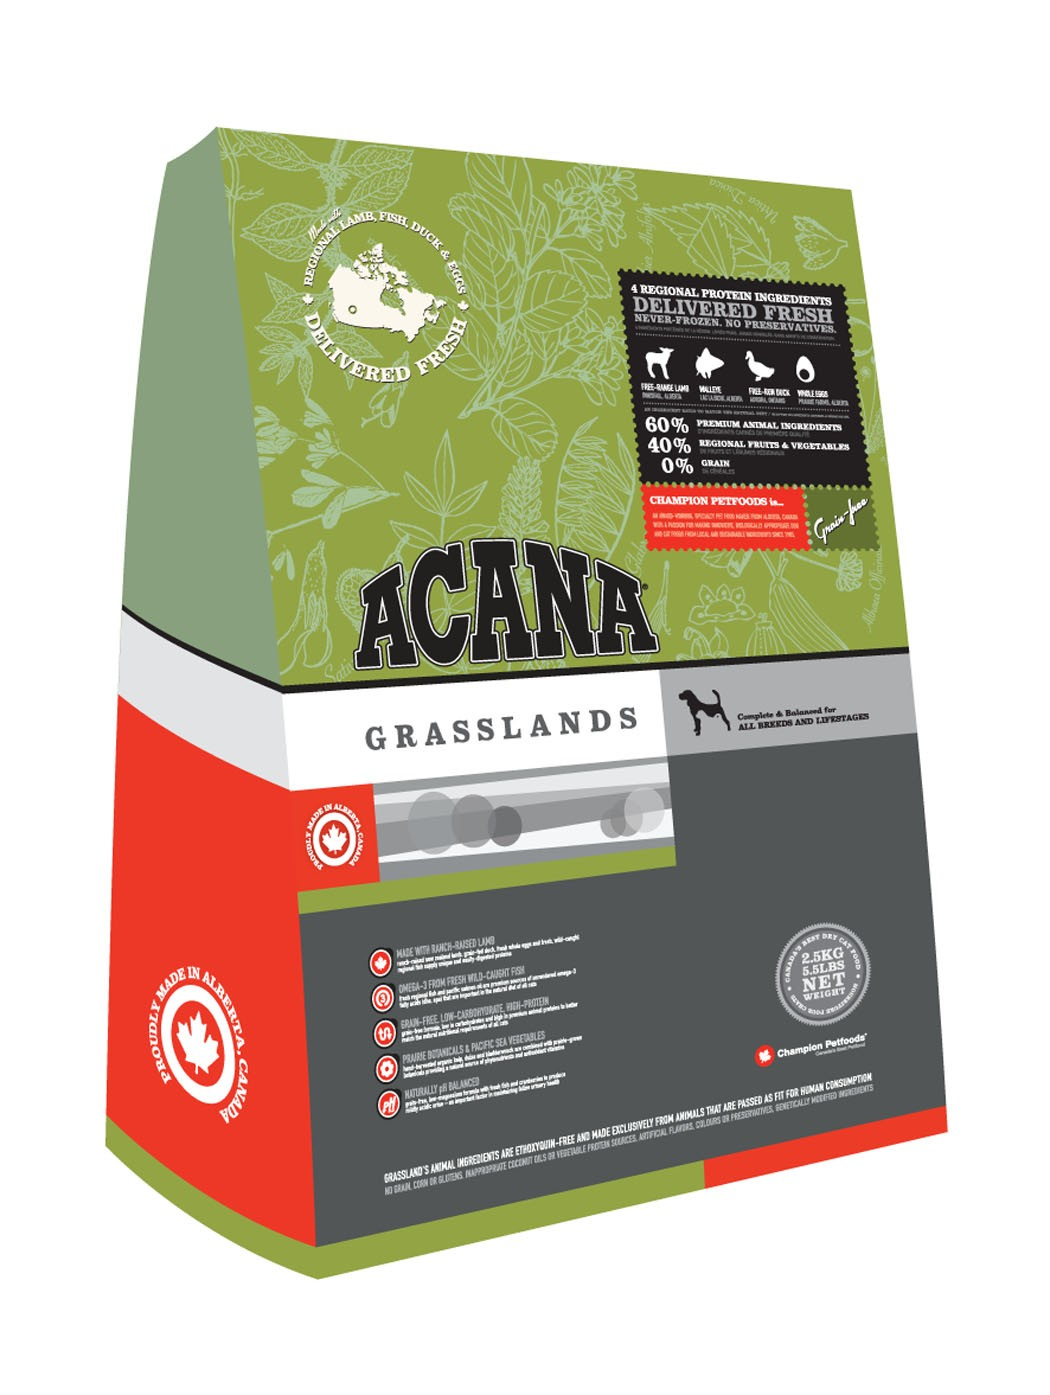 Best food for your furry friend. Willie and Mabel love ACANA Grasslands Regional Formula Grain-Free Dry Dog Food – and I love that it's a healthy pick for my little loves.